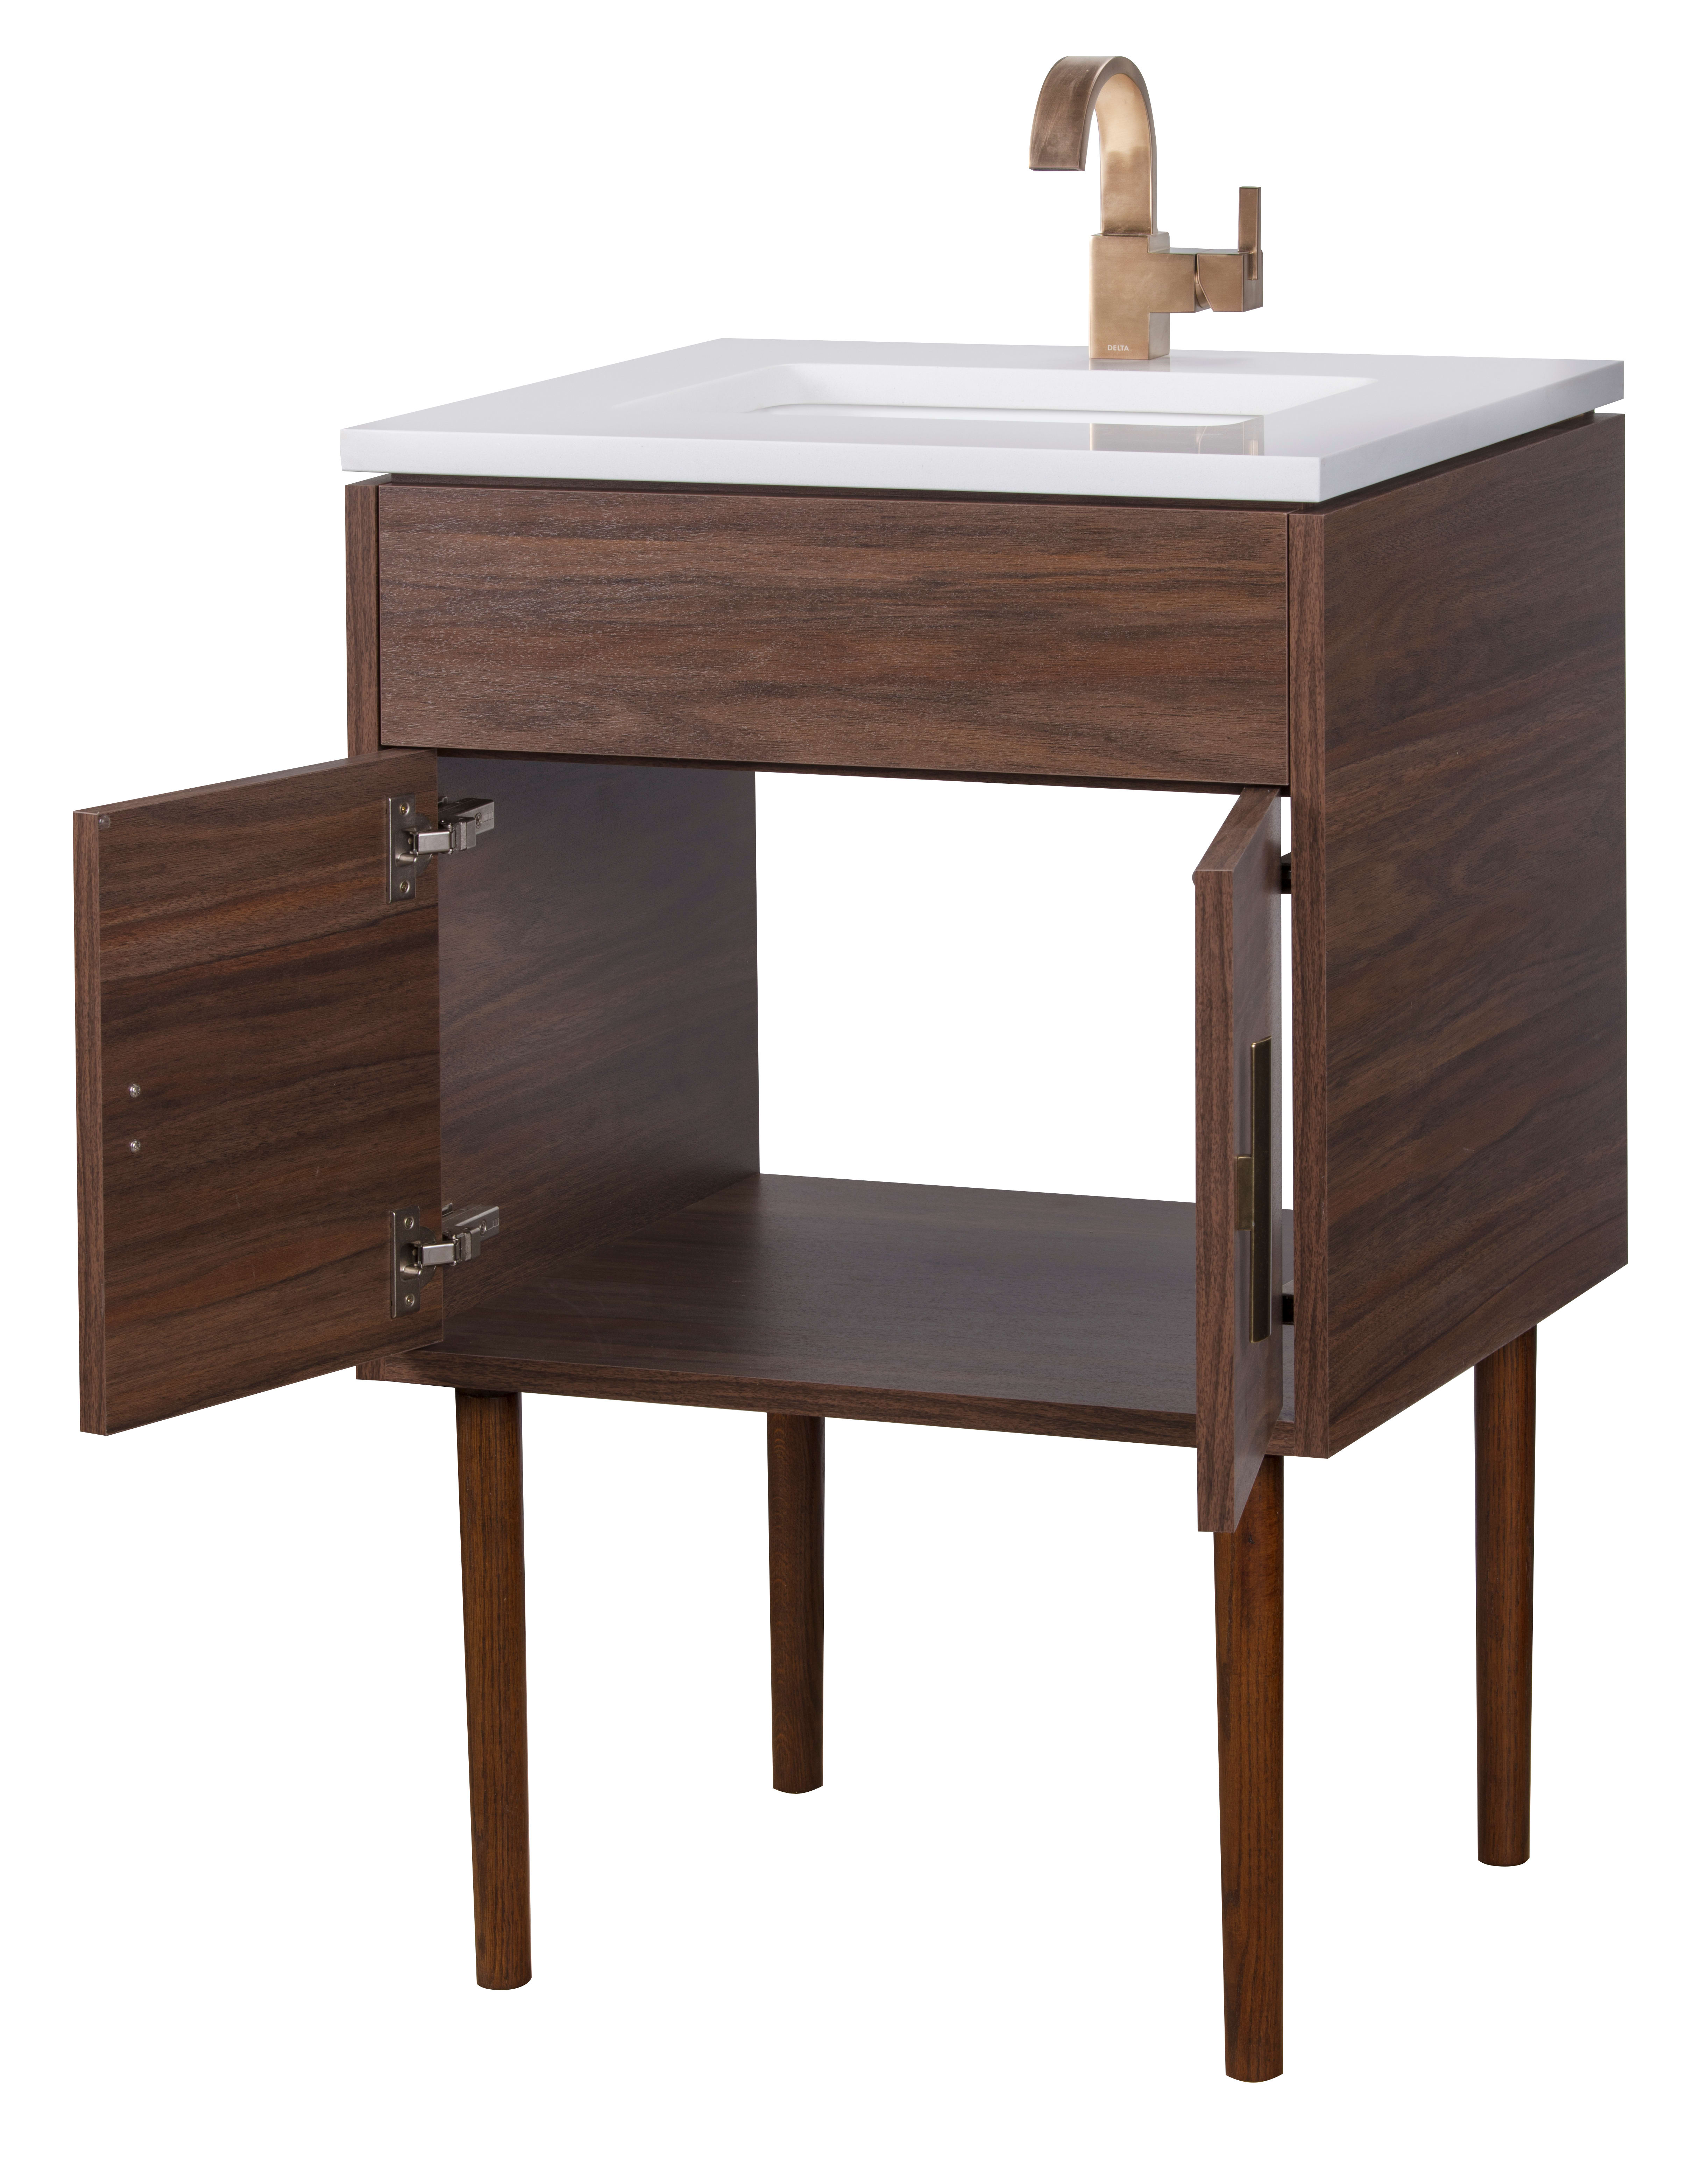 Cutler Kitchen And Bath Mid Cnt 24 Brown Garland 24 Free Standing Single Vanity Set With Quartz Vanity Top Faucet Com